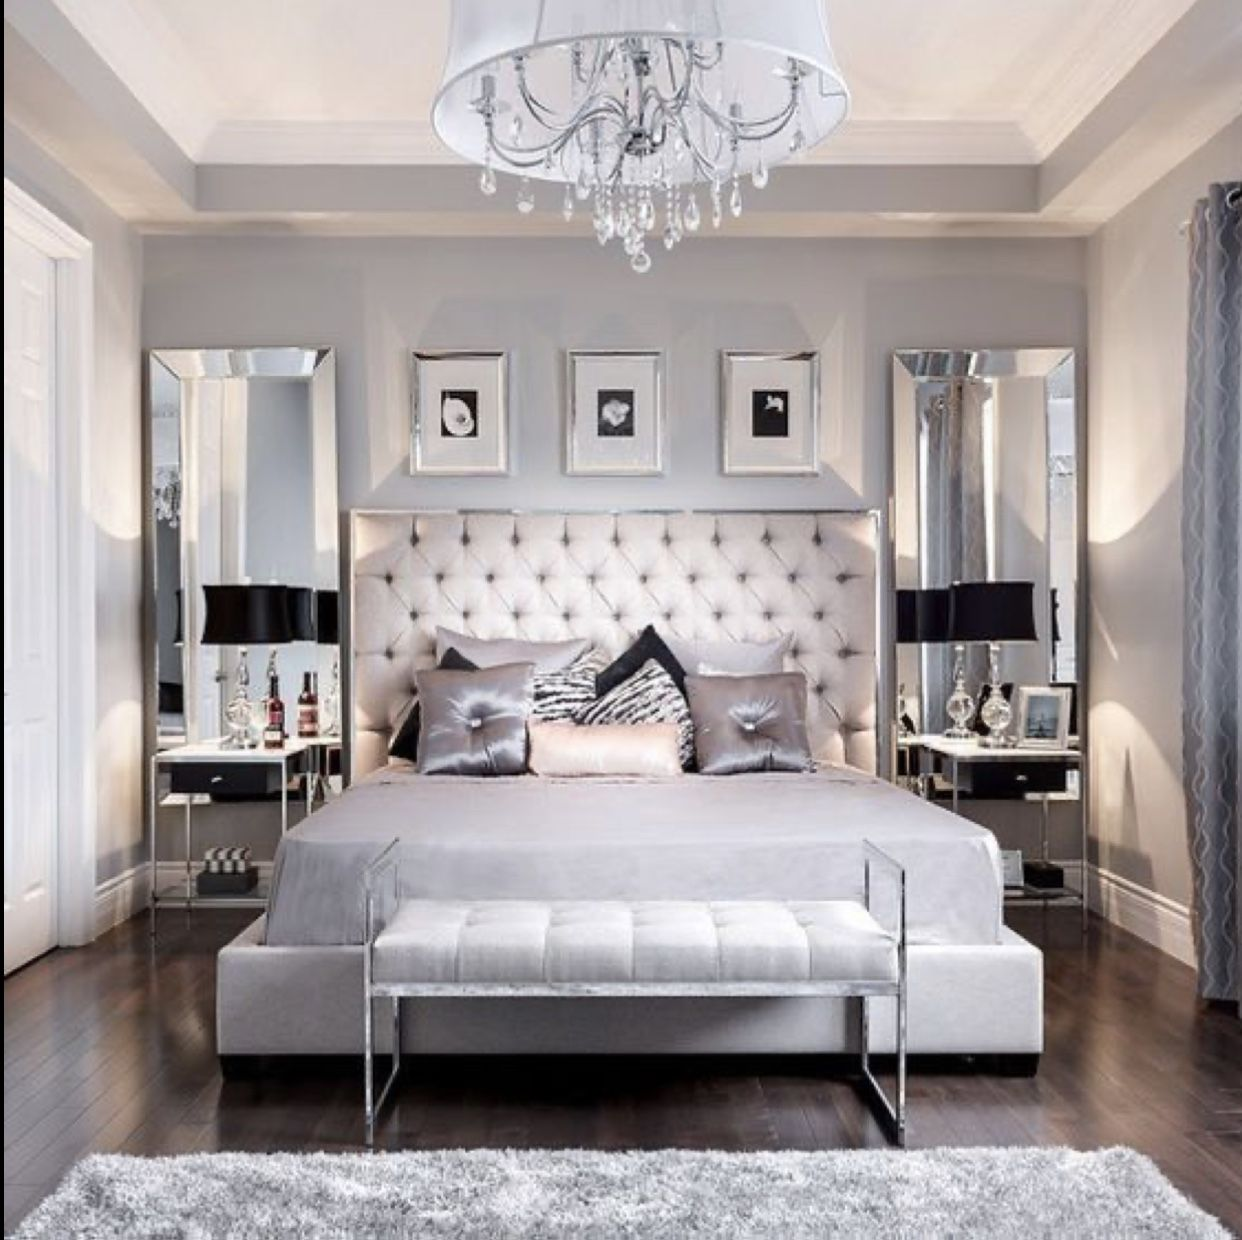 Pin By Sanaoui Sana On Home Decor Bedroom Interior Luxurious Bedrooms Master Bedrooms Decor